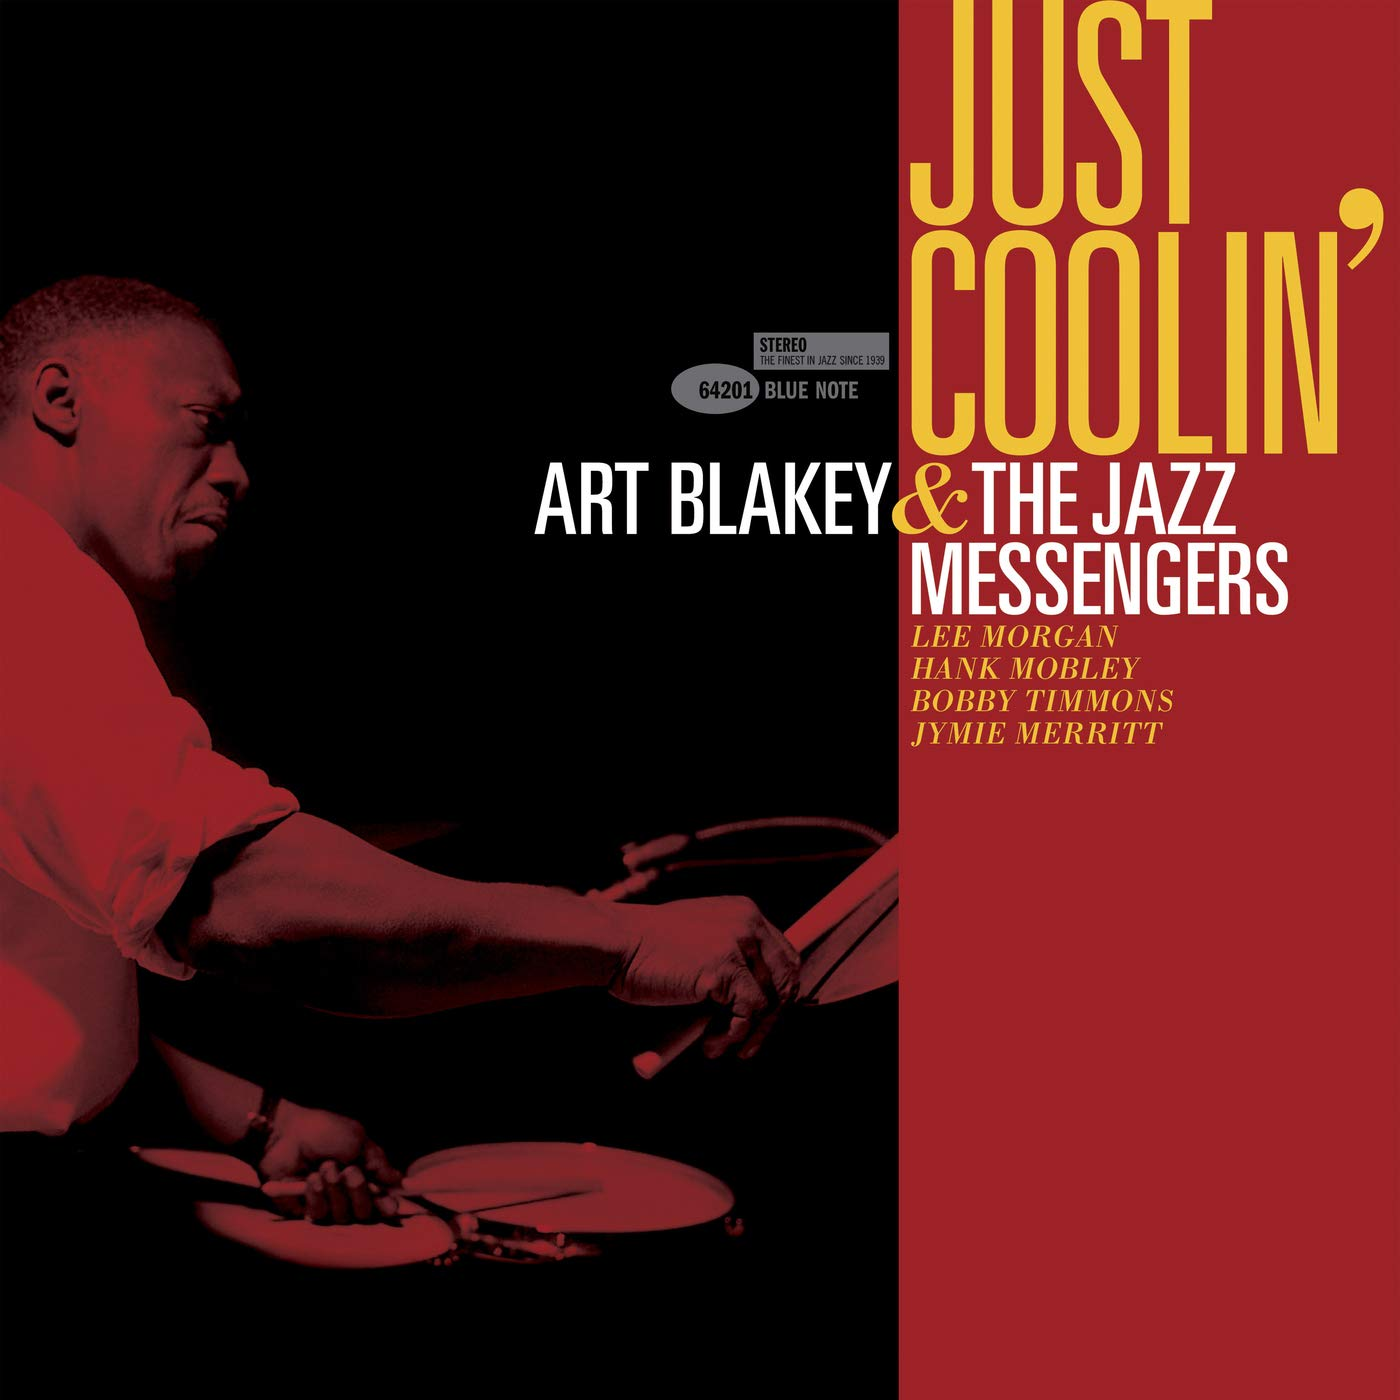 Art Blakey & The Jazz Messengers - Just Coolin' (2020) [FLAC] Download